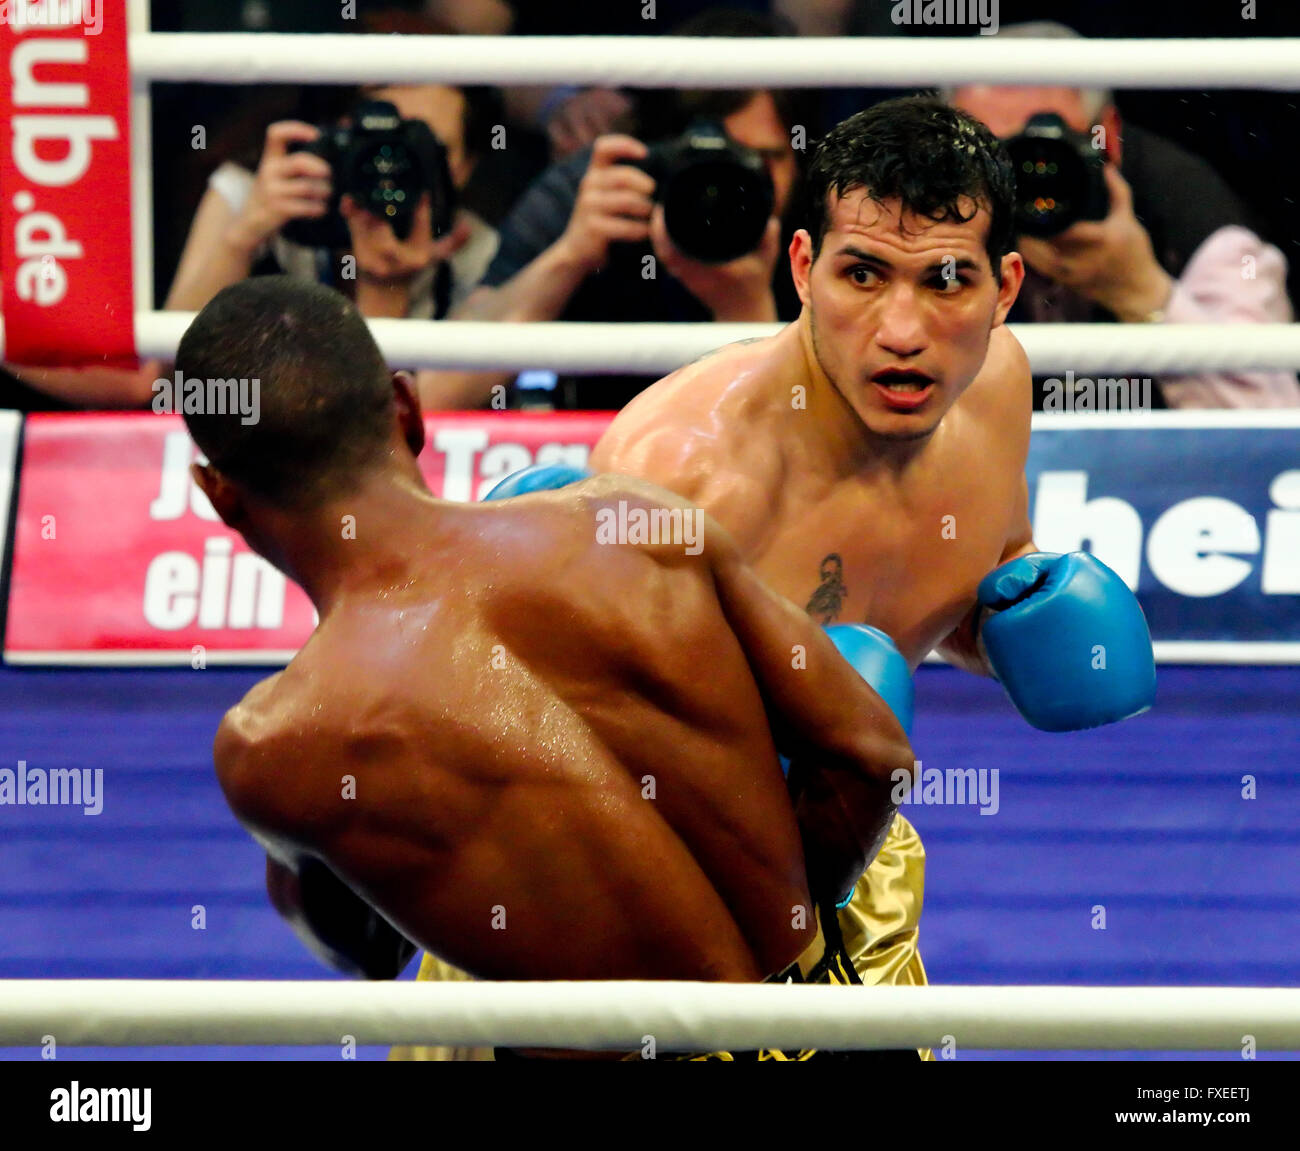 WBA light middleweight title bout between Jack Culcay (Germany)and Jean Carlos Prada (Venezuela), MBS Arena, Potsdam, - Stock Image